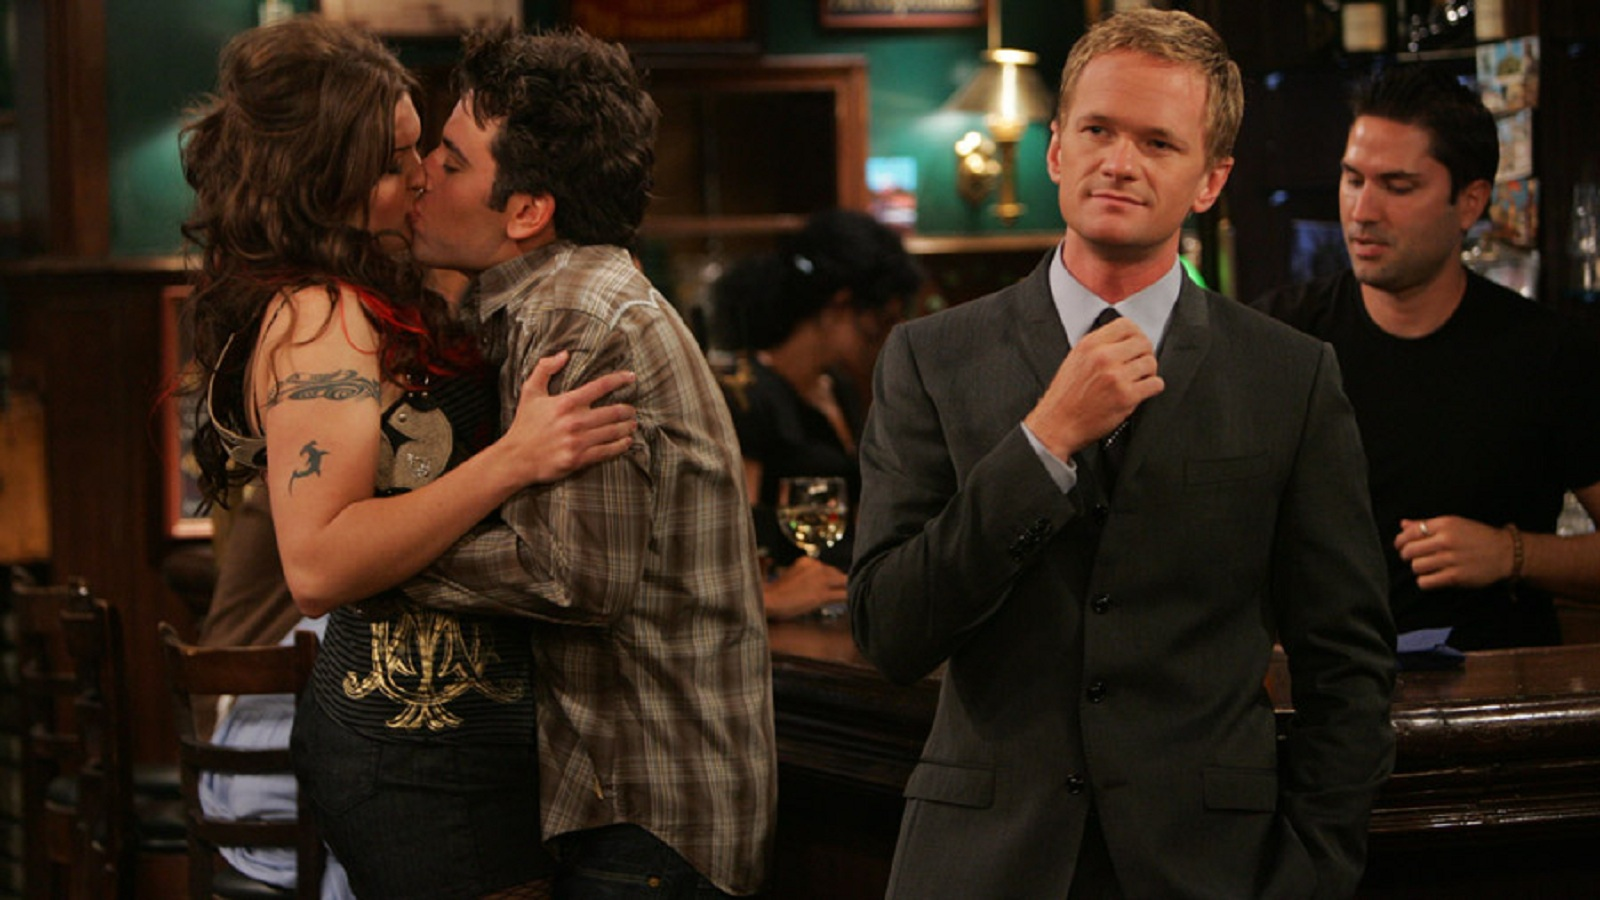 How to pick up hot chicks? 8 Tips from Barney's 'The Playbook'